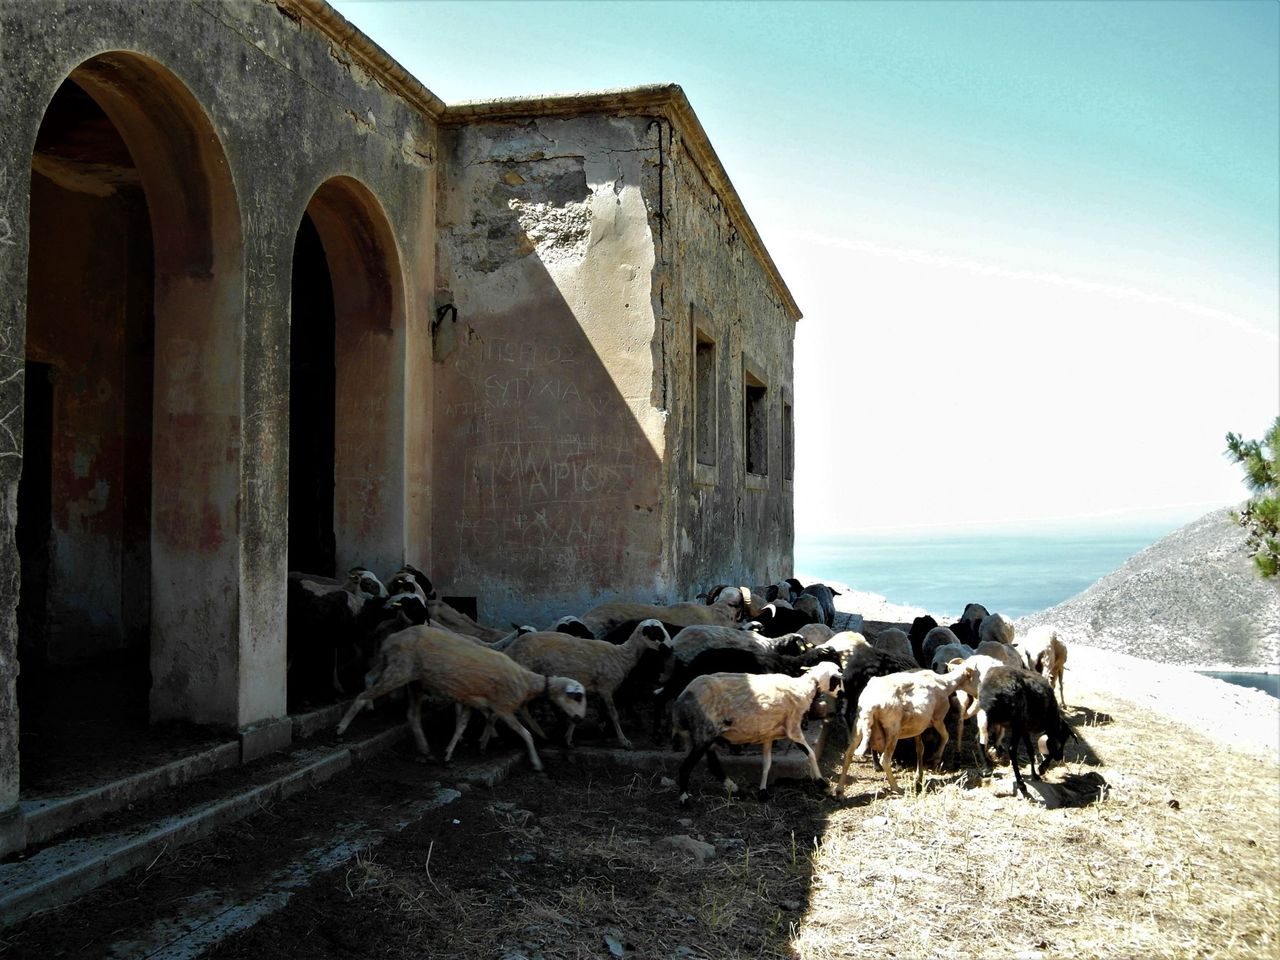 Sheep and goats roam in the very same buildings soldiers used during World War 2